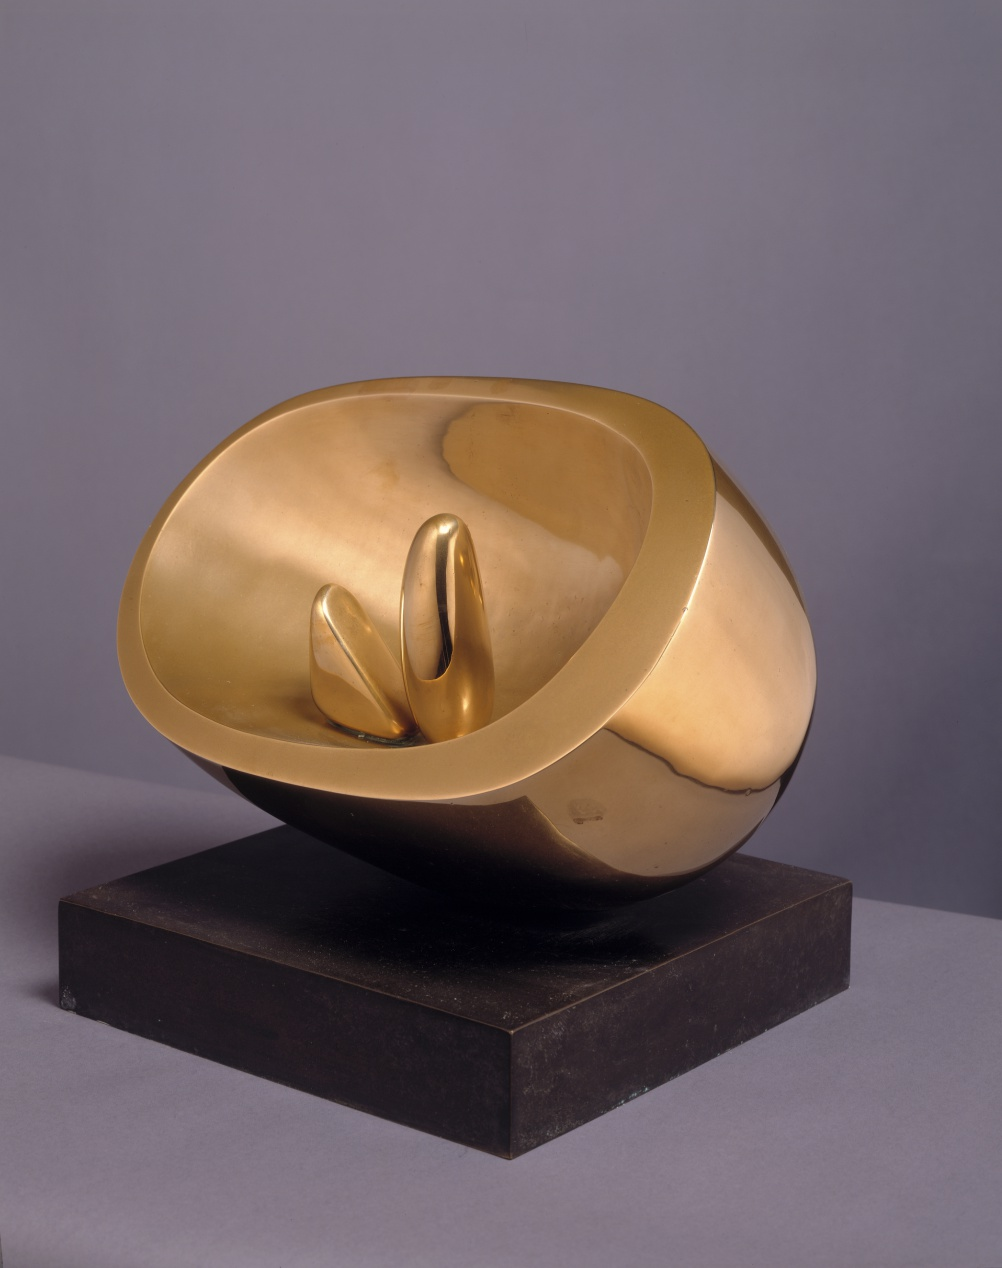 Barbara Hepworth, Oval with Two Forms, 1971. Polished bronze, Courtesy of Hepworth Estate